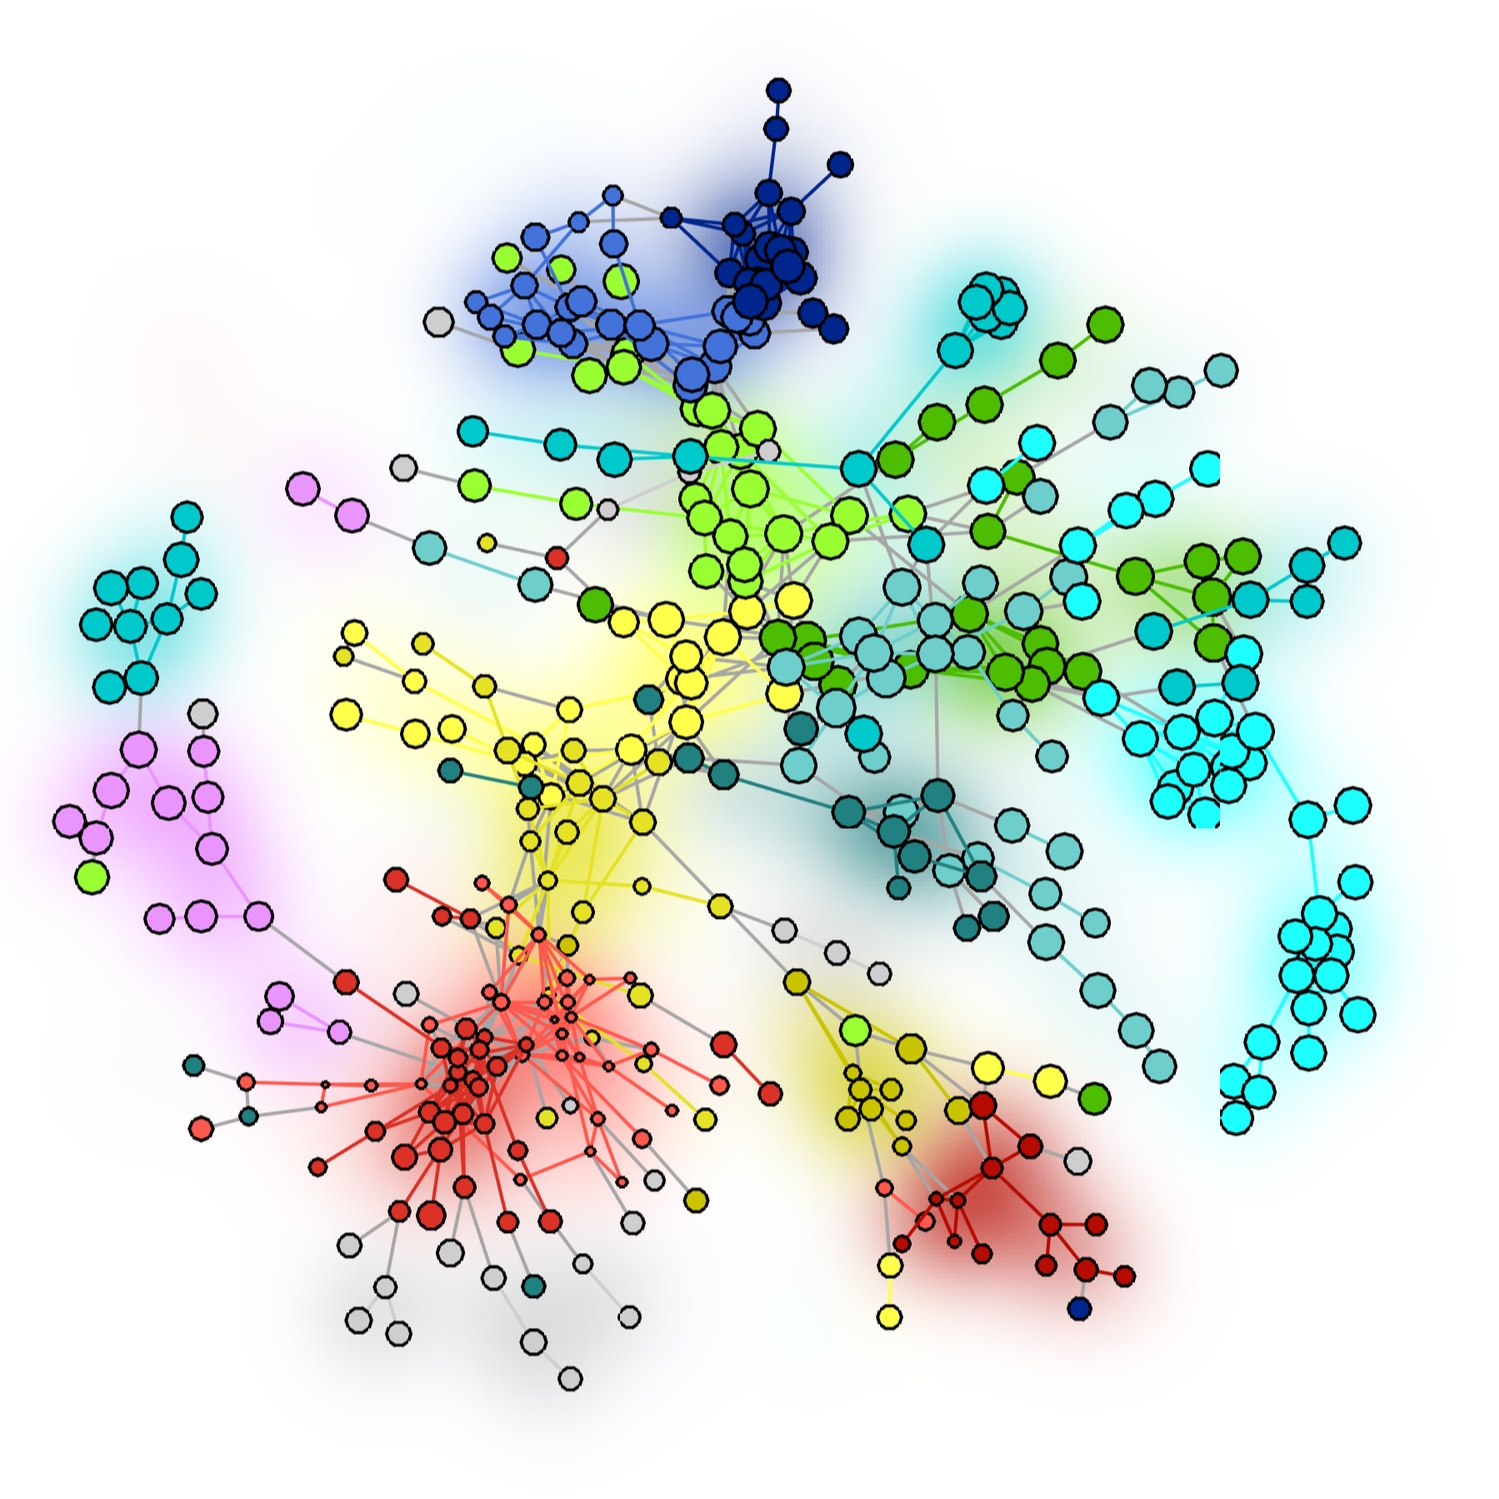 Matlab code for generating visually appealing force-directed (and community-labeled) networks. [ Link to code ]